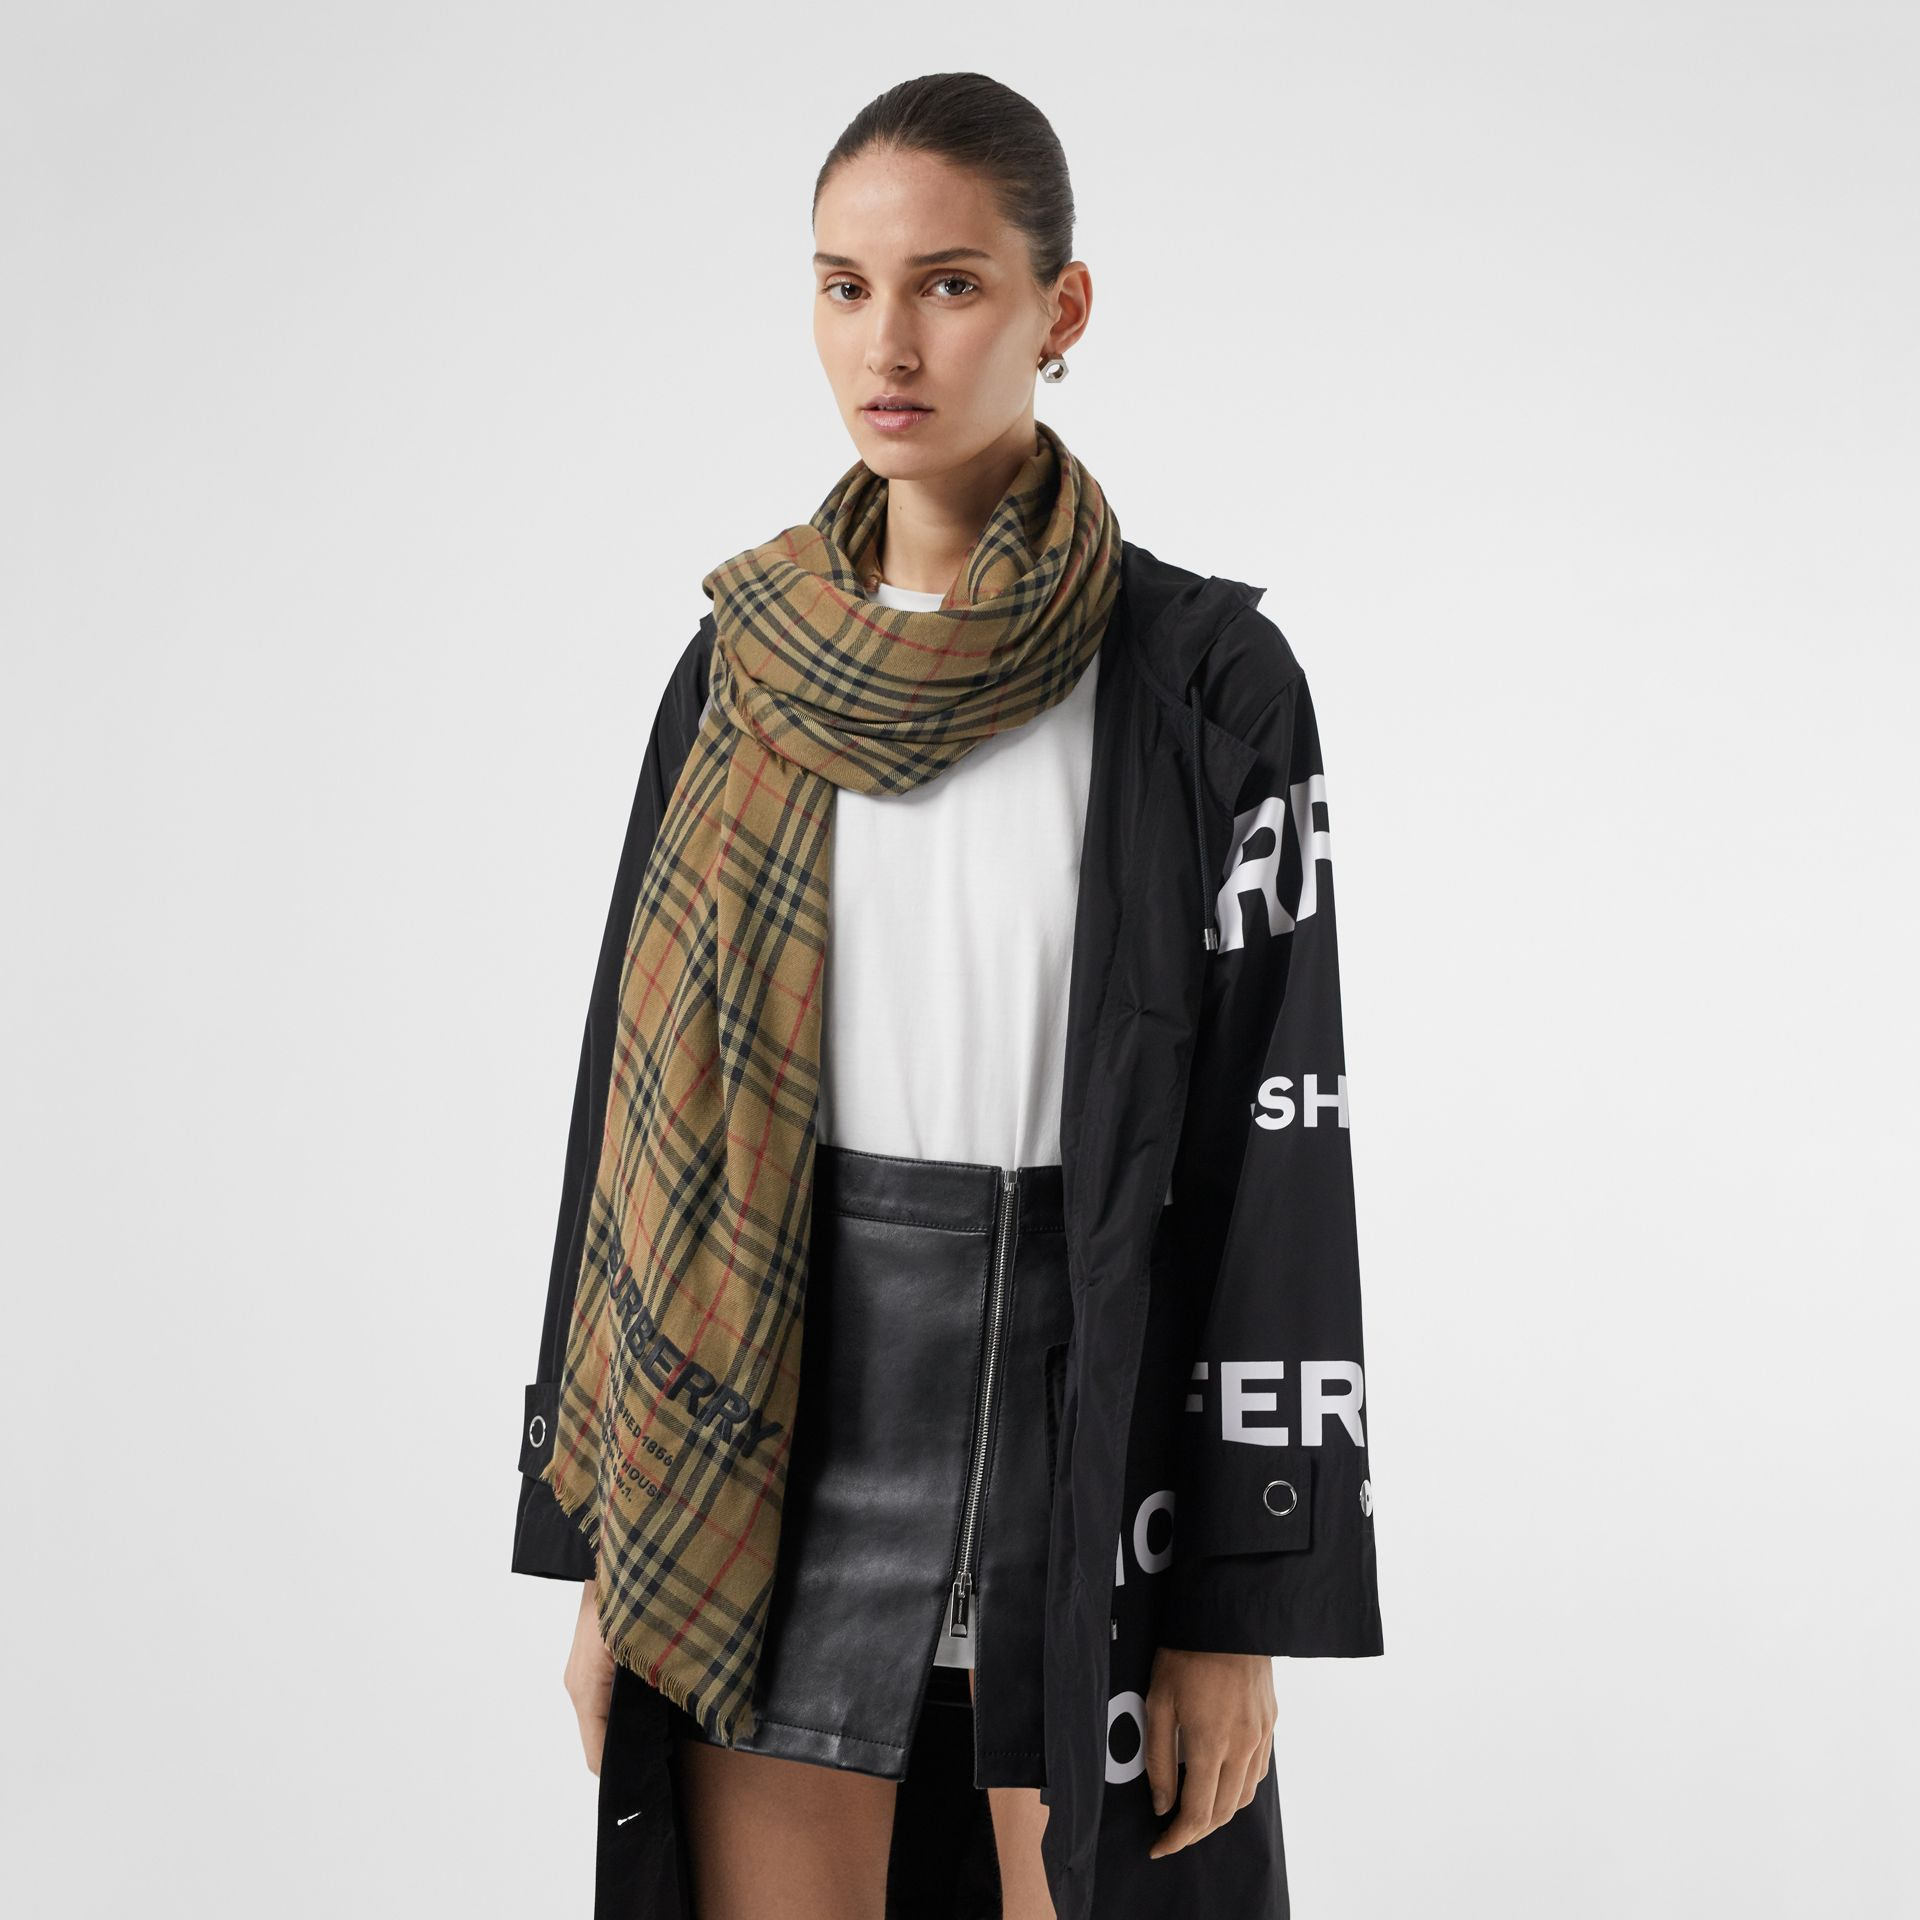 Embroidered Vintage Check Lightweight Cashmere Scarf in Olive Green | Burberry United Kingdom - gallery image 2